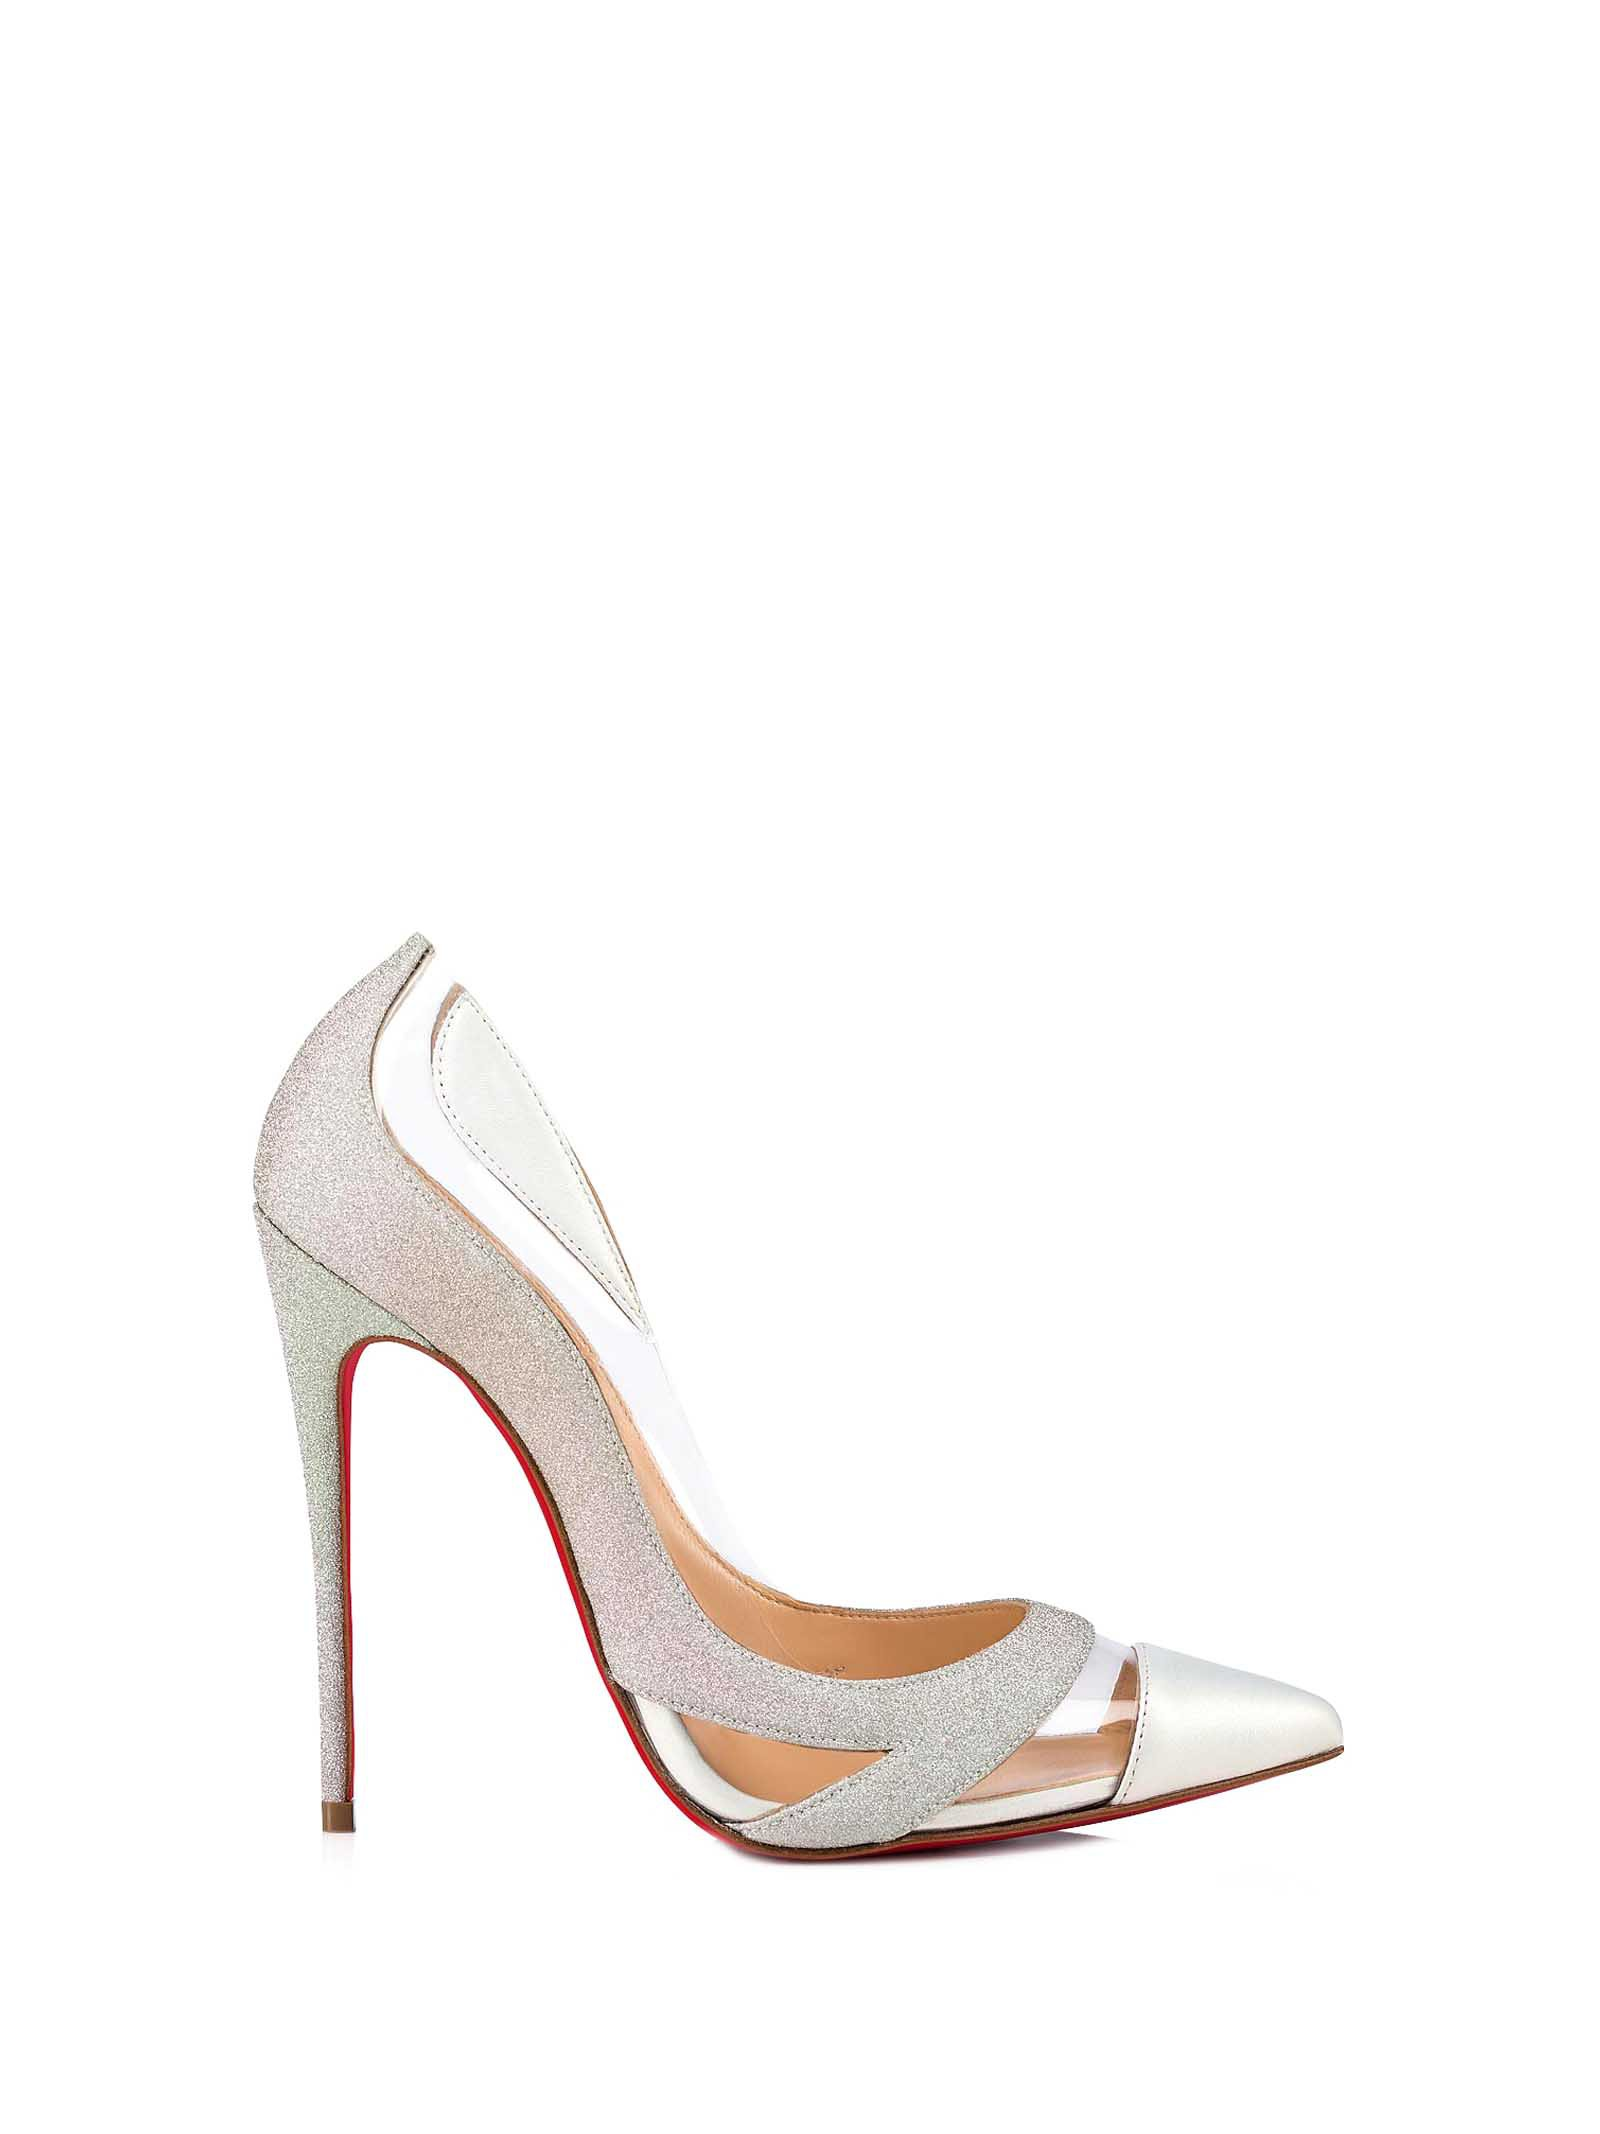 Christian Louboutin Louboutin Blake Is Back Pump